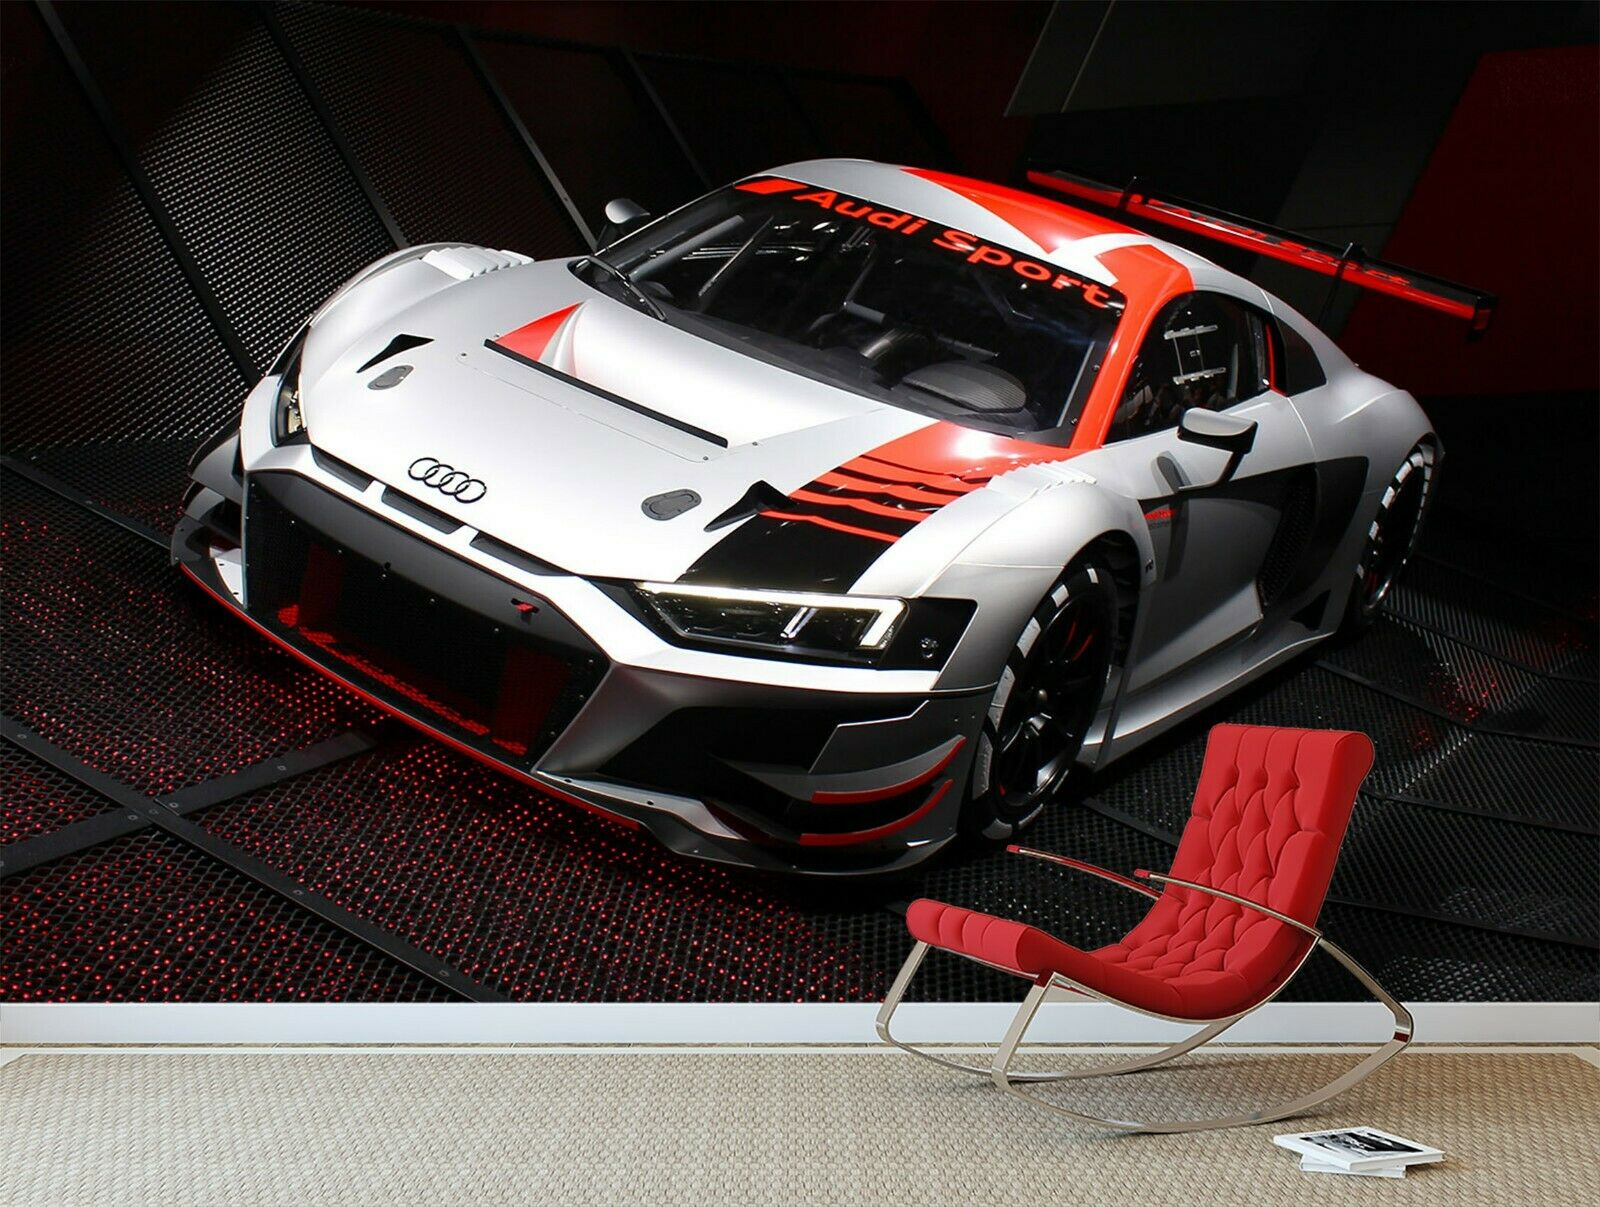 3D Sports Car B163 Transport Wallpaper Mural Self-adhesive Removable Wendy